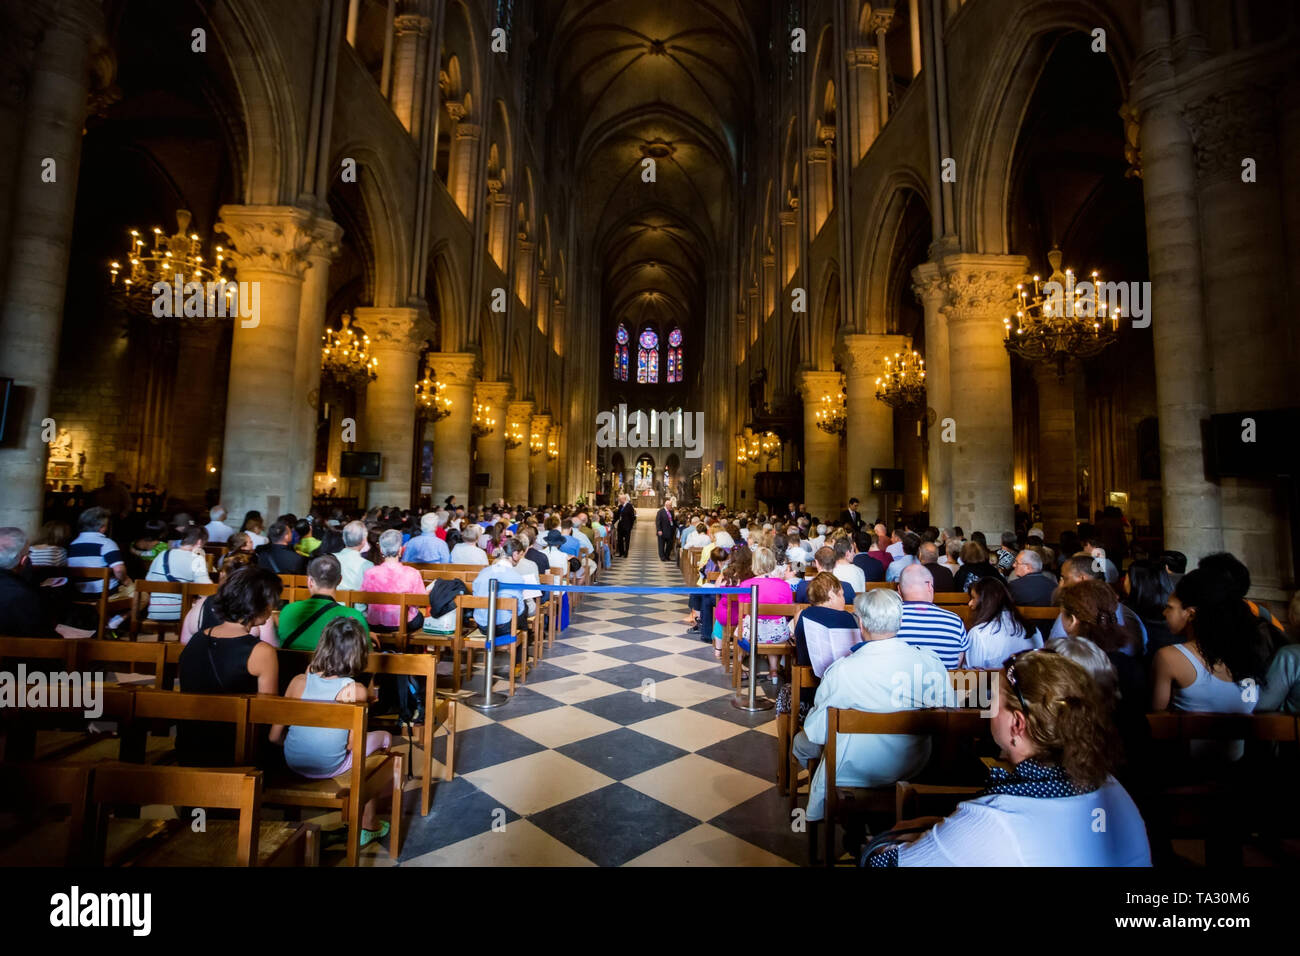 PARIS, FRANCE - 8 JUNE 2014: Unidentified tourists visiting Notre Dame de Paris - Stock Image